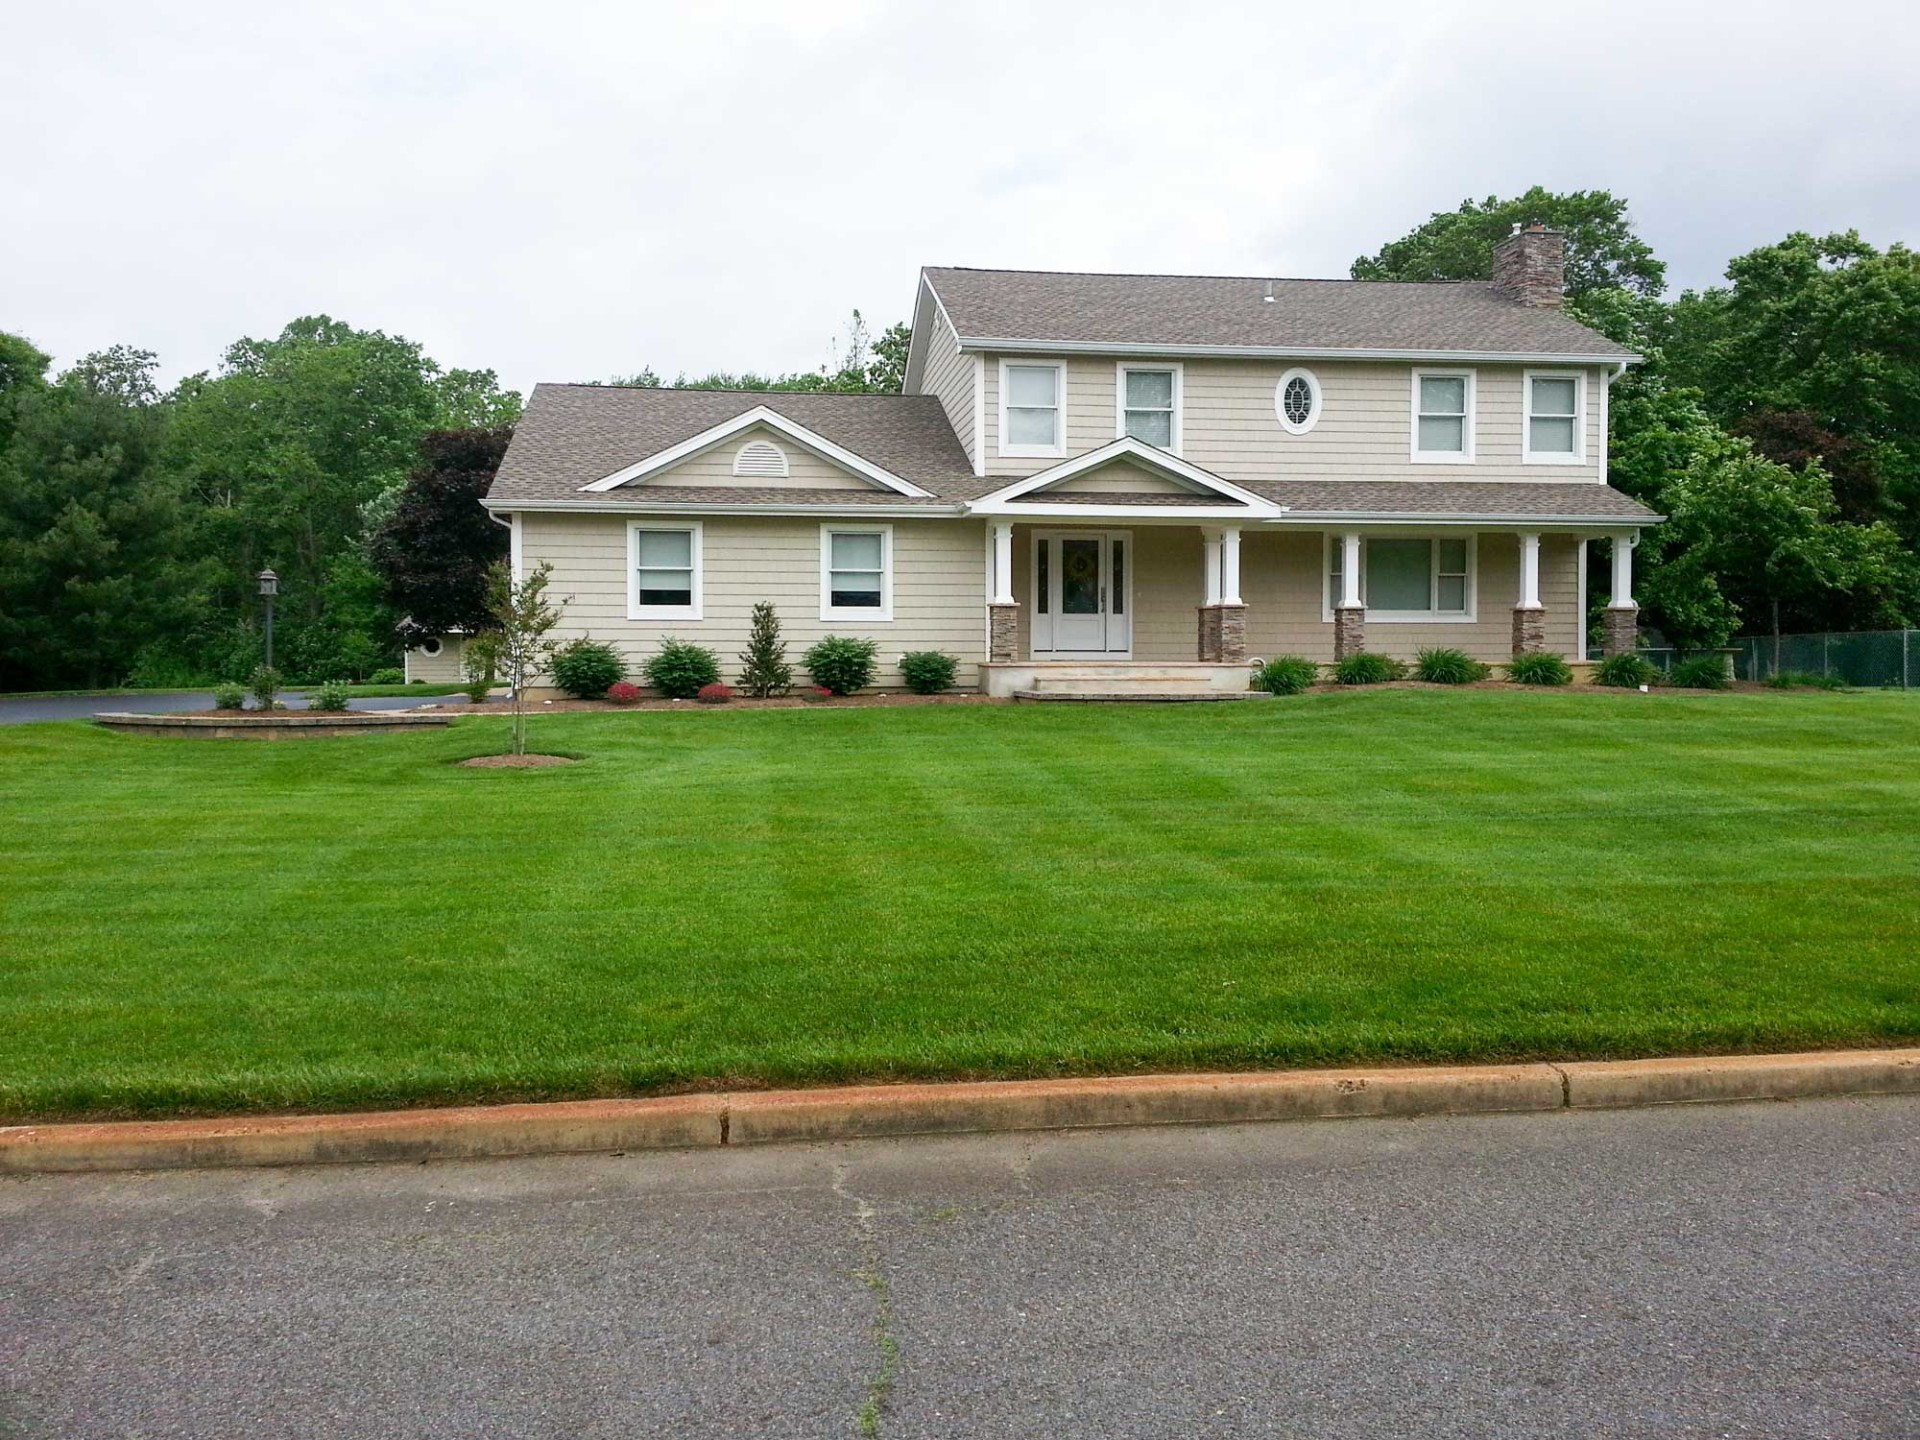 Plush Lawn In Front Yard Walkway And Newly Planted Beds